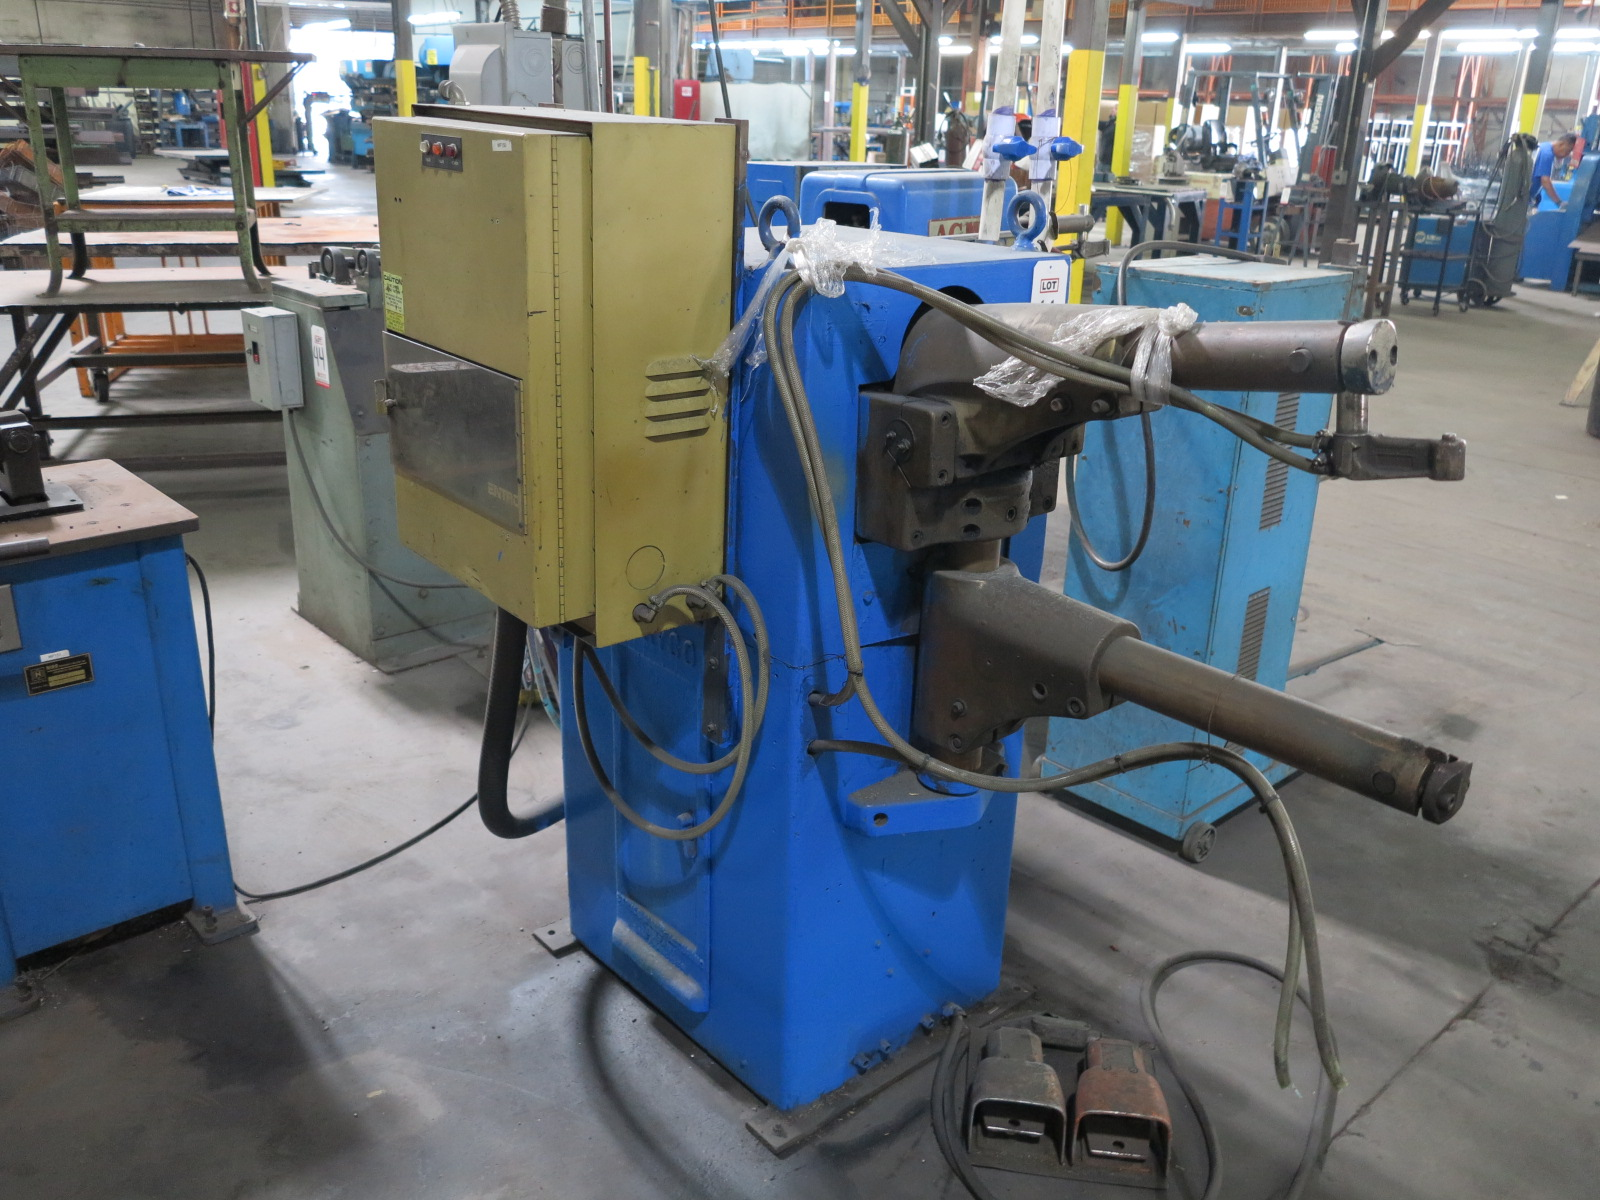 """24"""" STRYCO SPOT WELDER, FOOT PEDAL, ENTRON CONTROL - Image 2 of 2"""